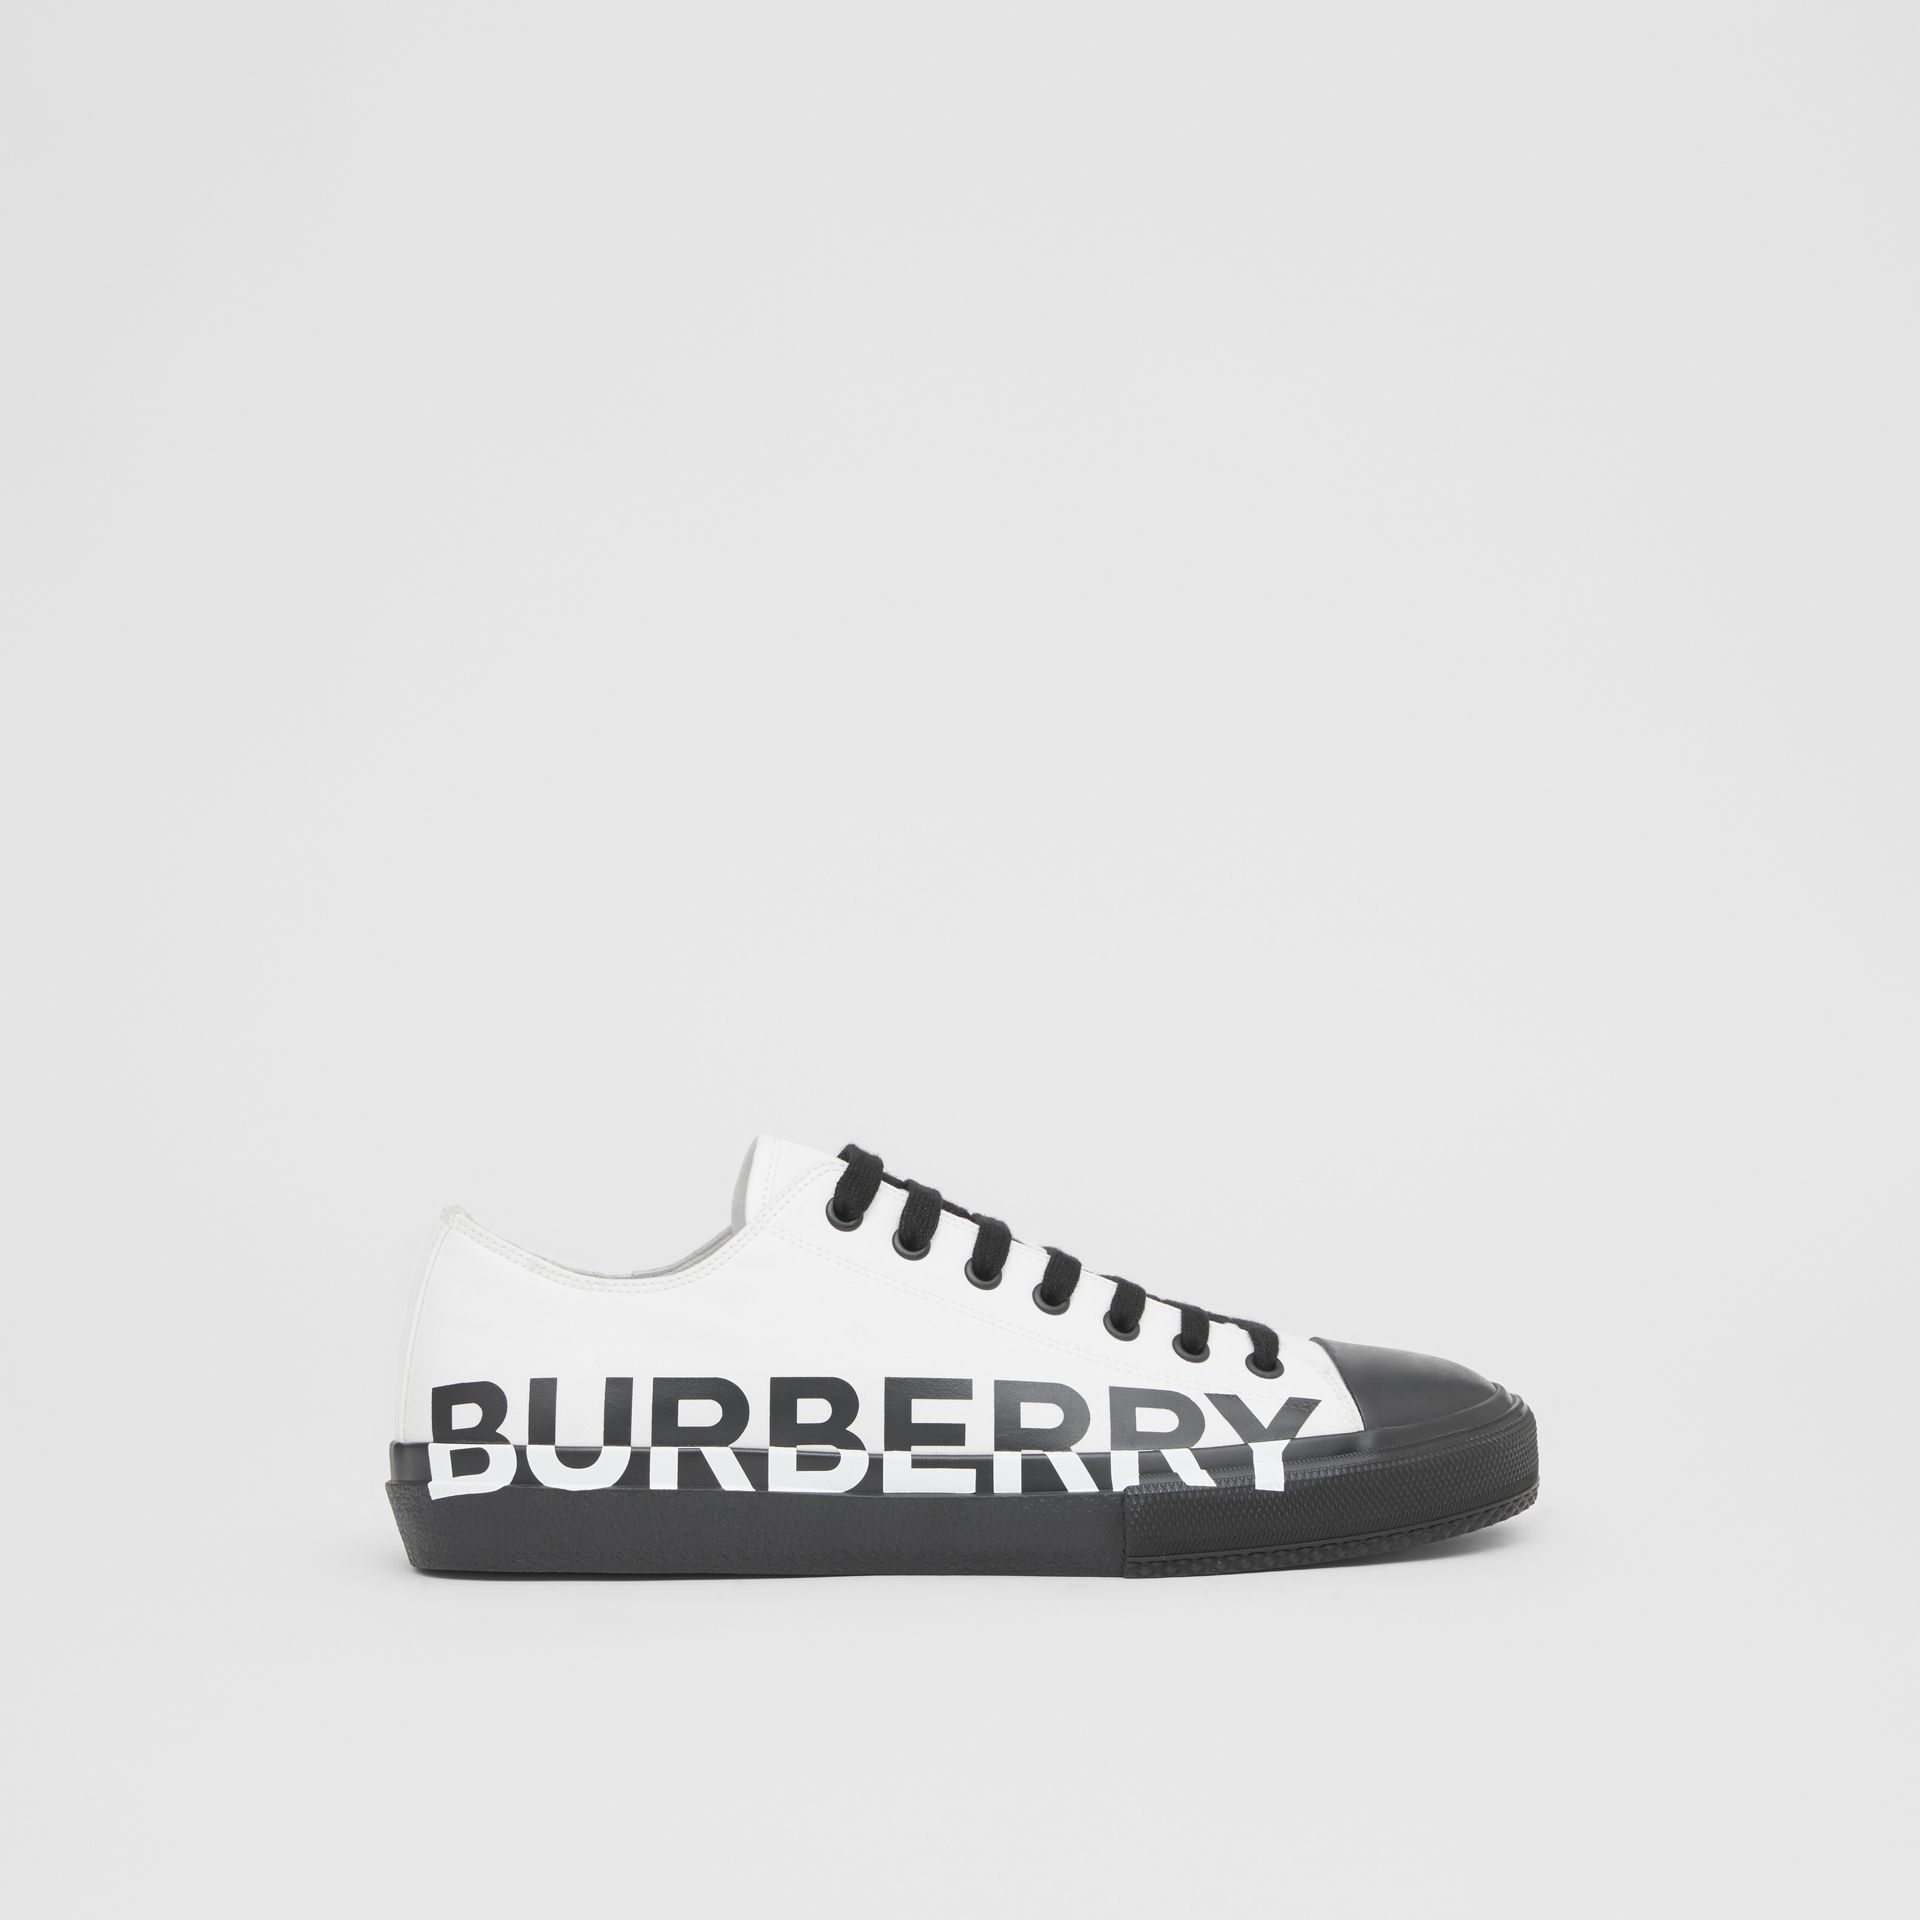 Sneakers en gabardine de coton bicolore avec logo (Blanc Optique/noir) - Homme | Burberry - photo de la galerie 4